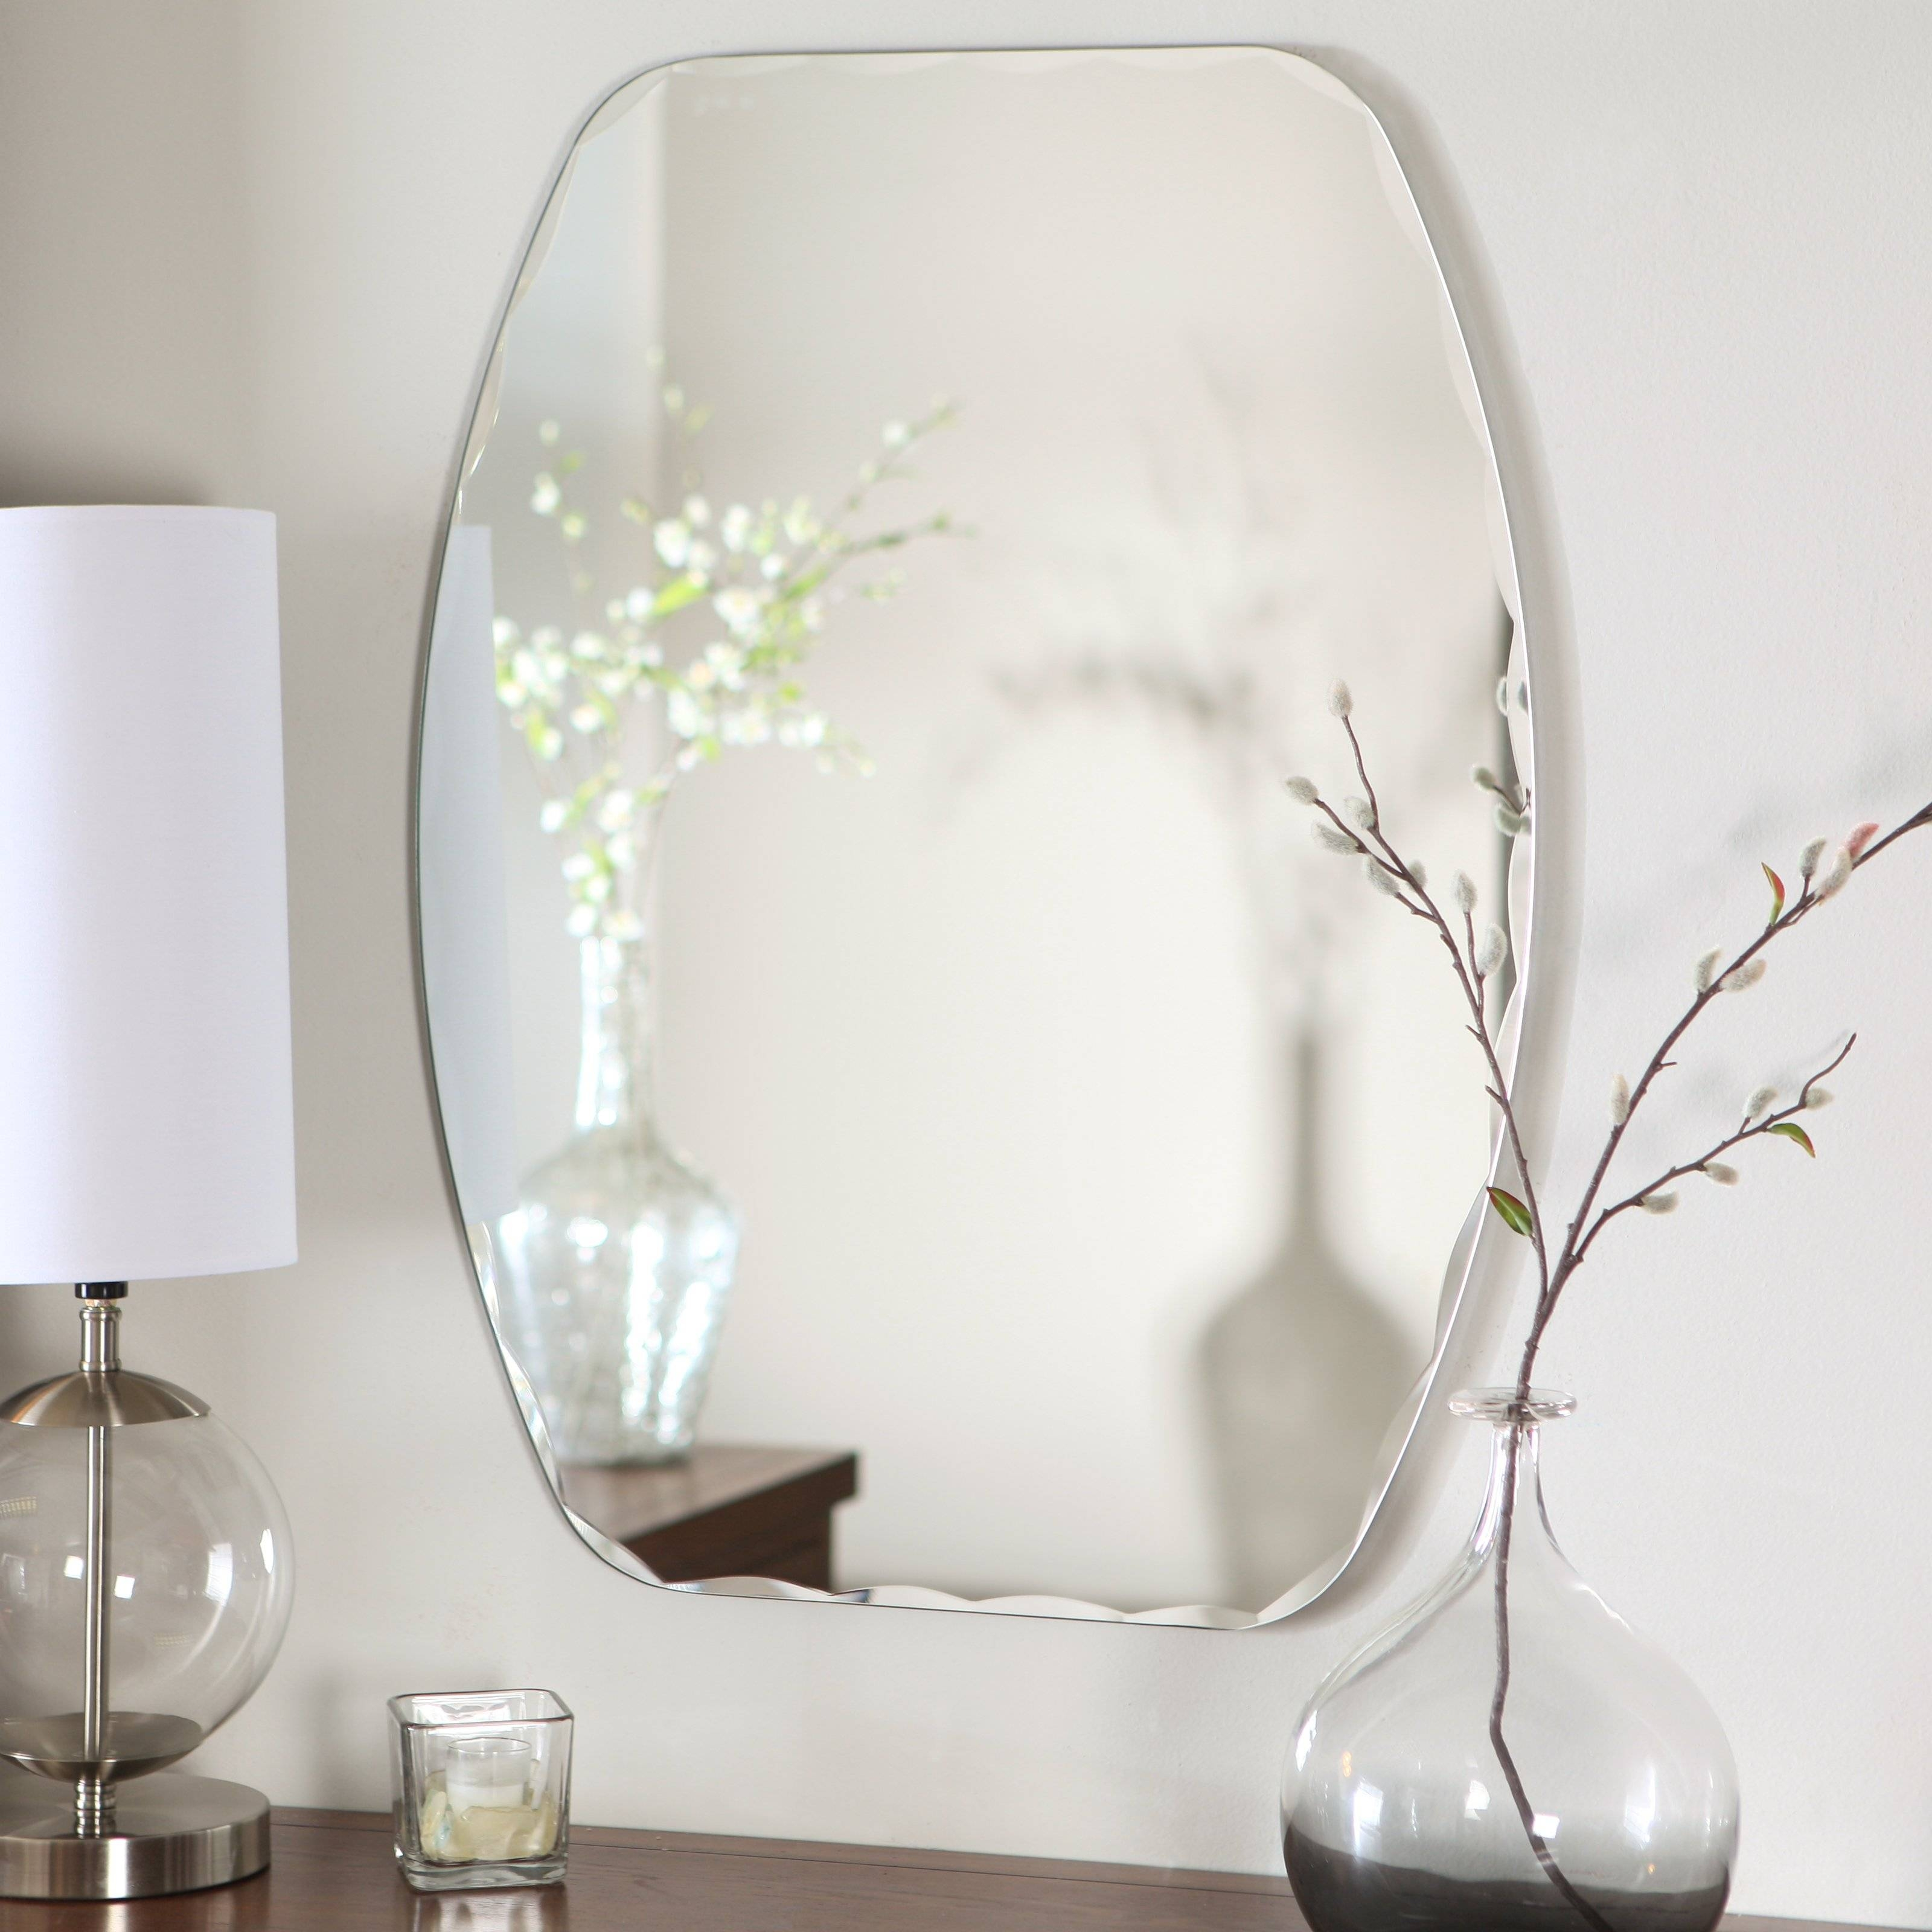 Unusual Mirrors For Bathrooms | My Web Value inside Unusual Mirrors For Bathrooms (Image 25 of 25)